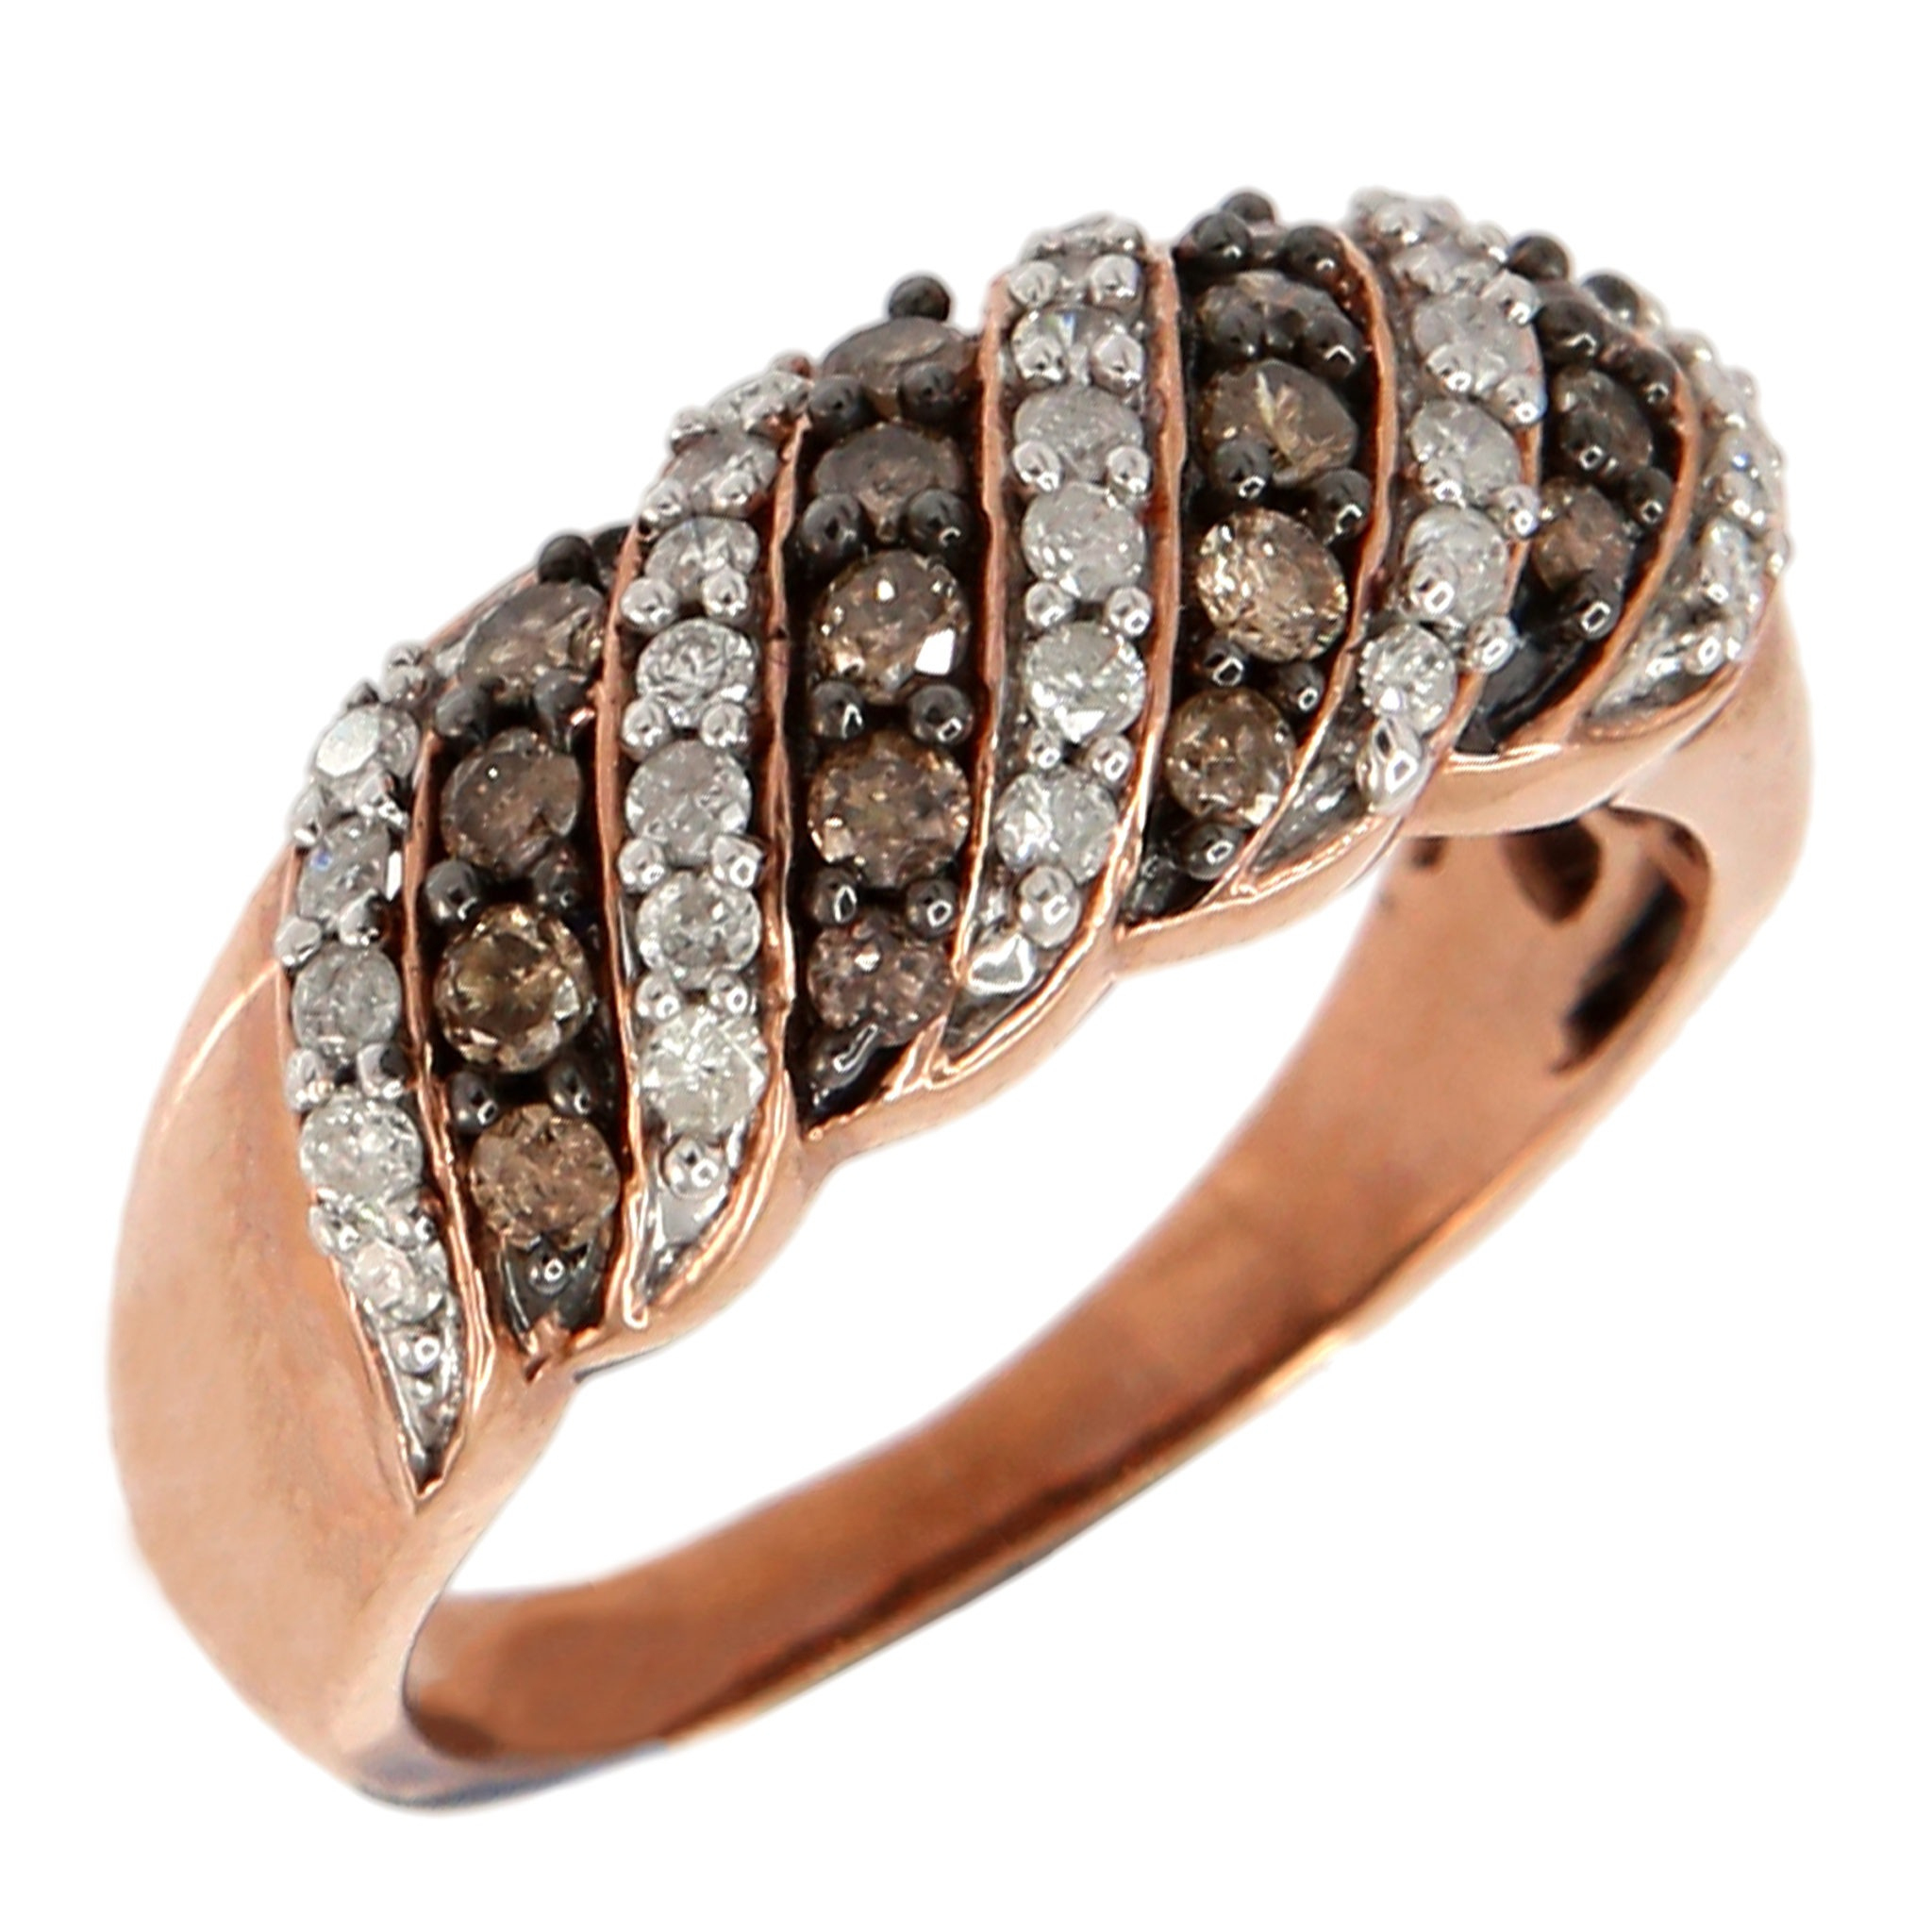 10Kt Rose Gold 1Ctw Champagne And White Diamond Brilliant Round Band Ring Inside Most Current Champagne And White Diamond Swirled Anniversary Bands In Rose Gold (View 6 of 25)